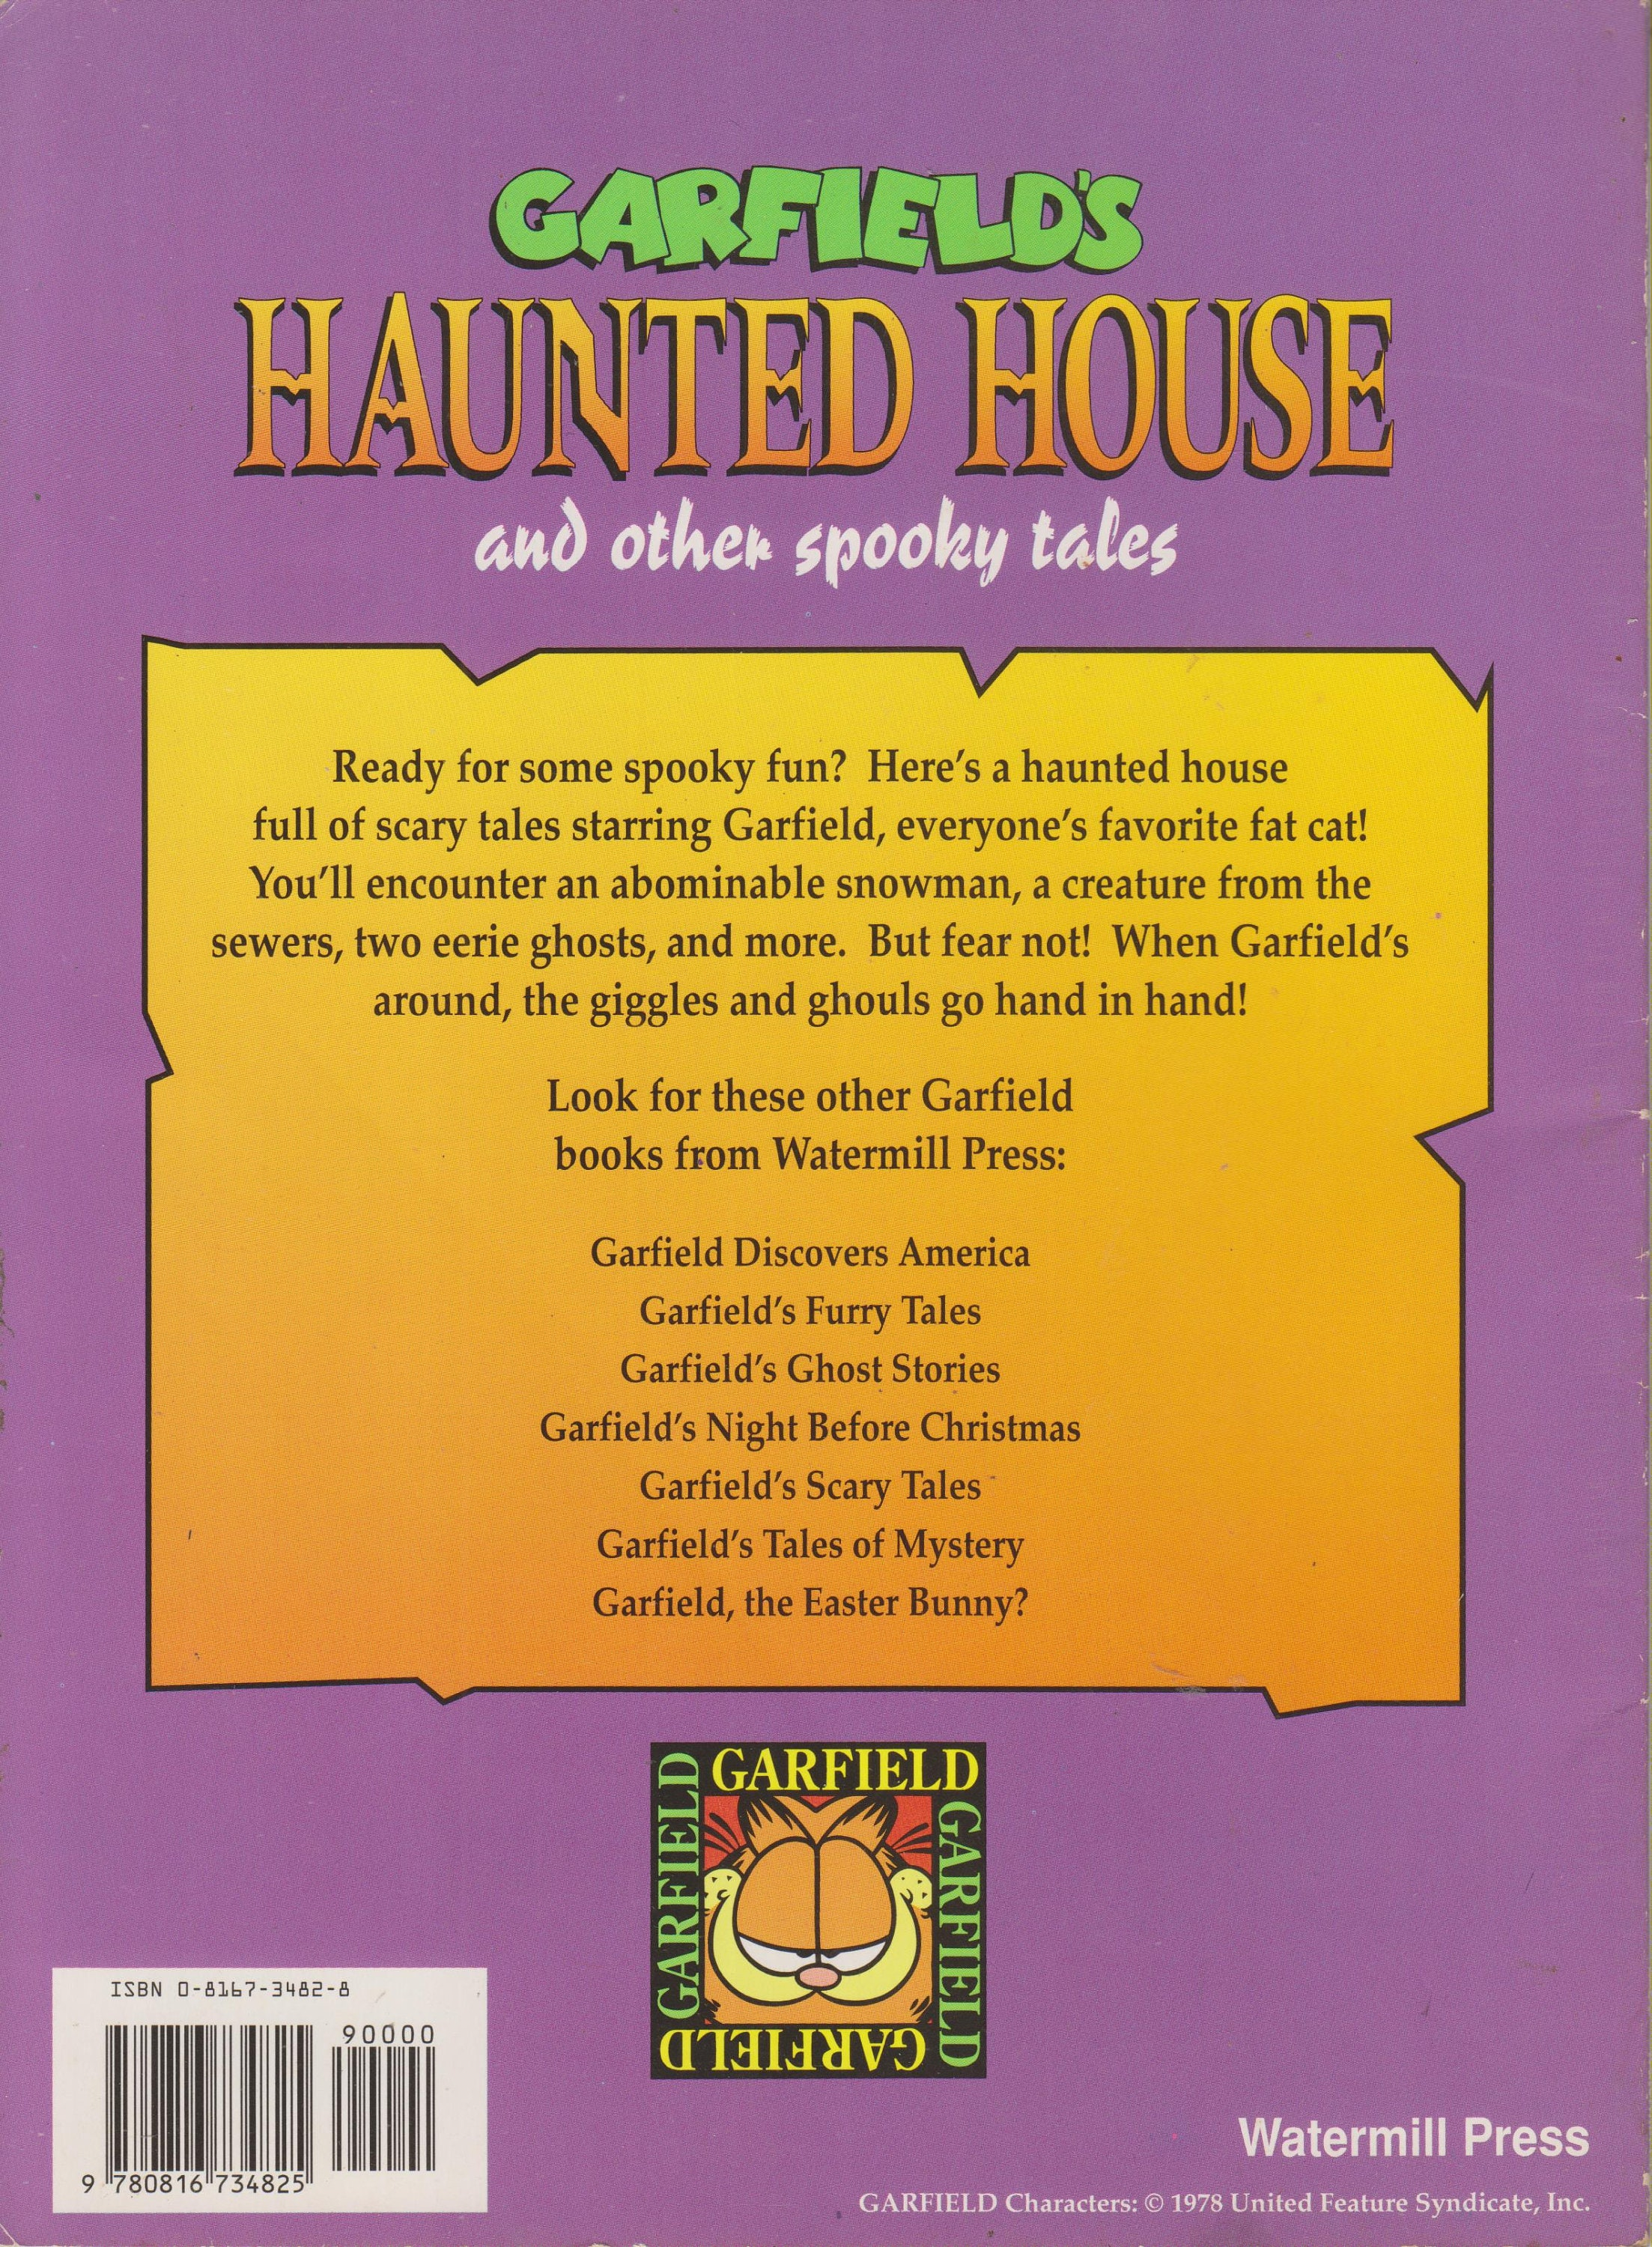 Garfield S Haunted House And Other Spooky Tales Softcover Children S Picture Book 1994